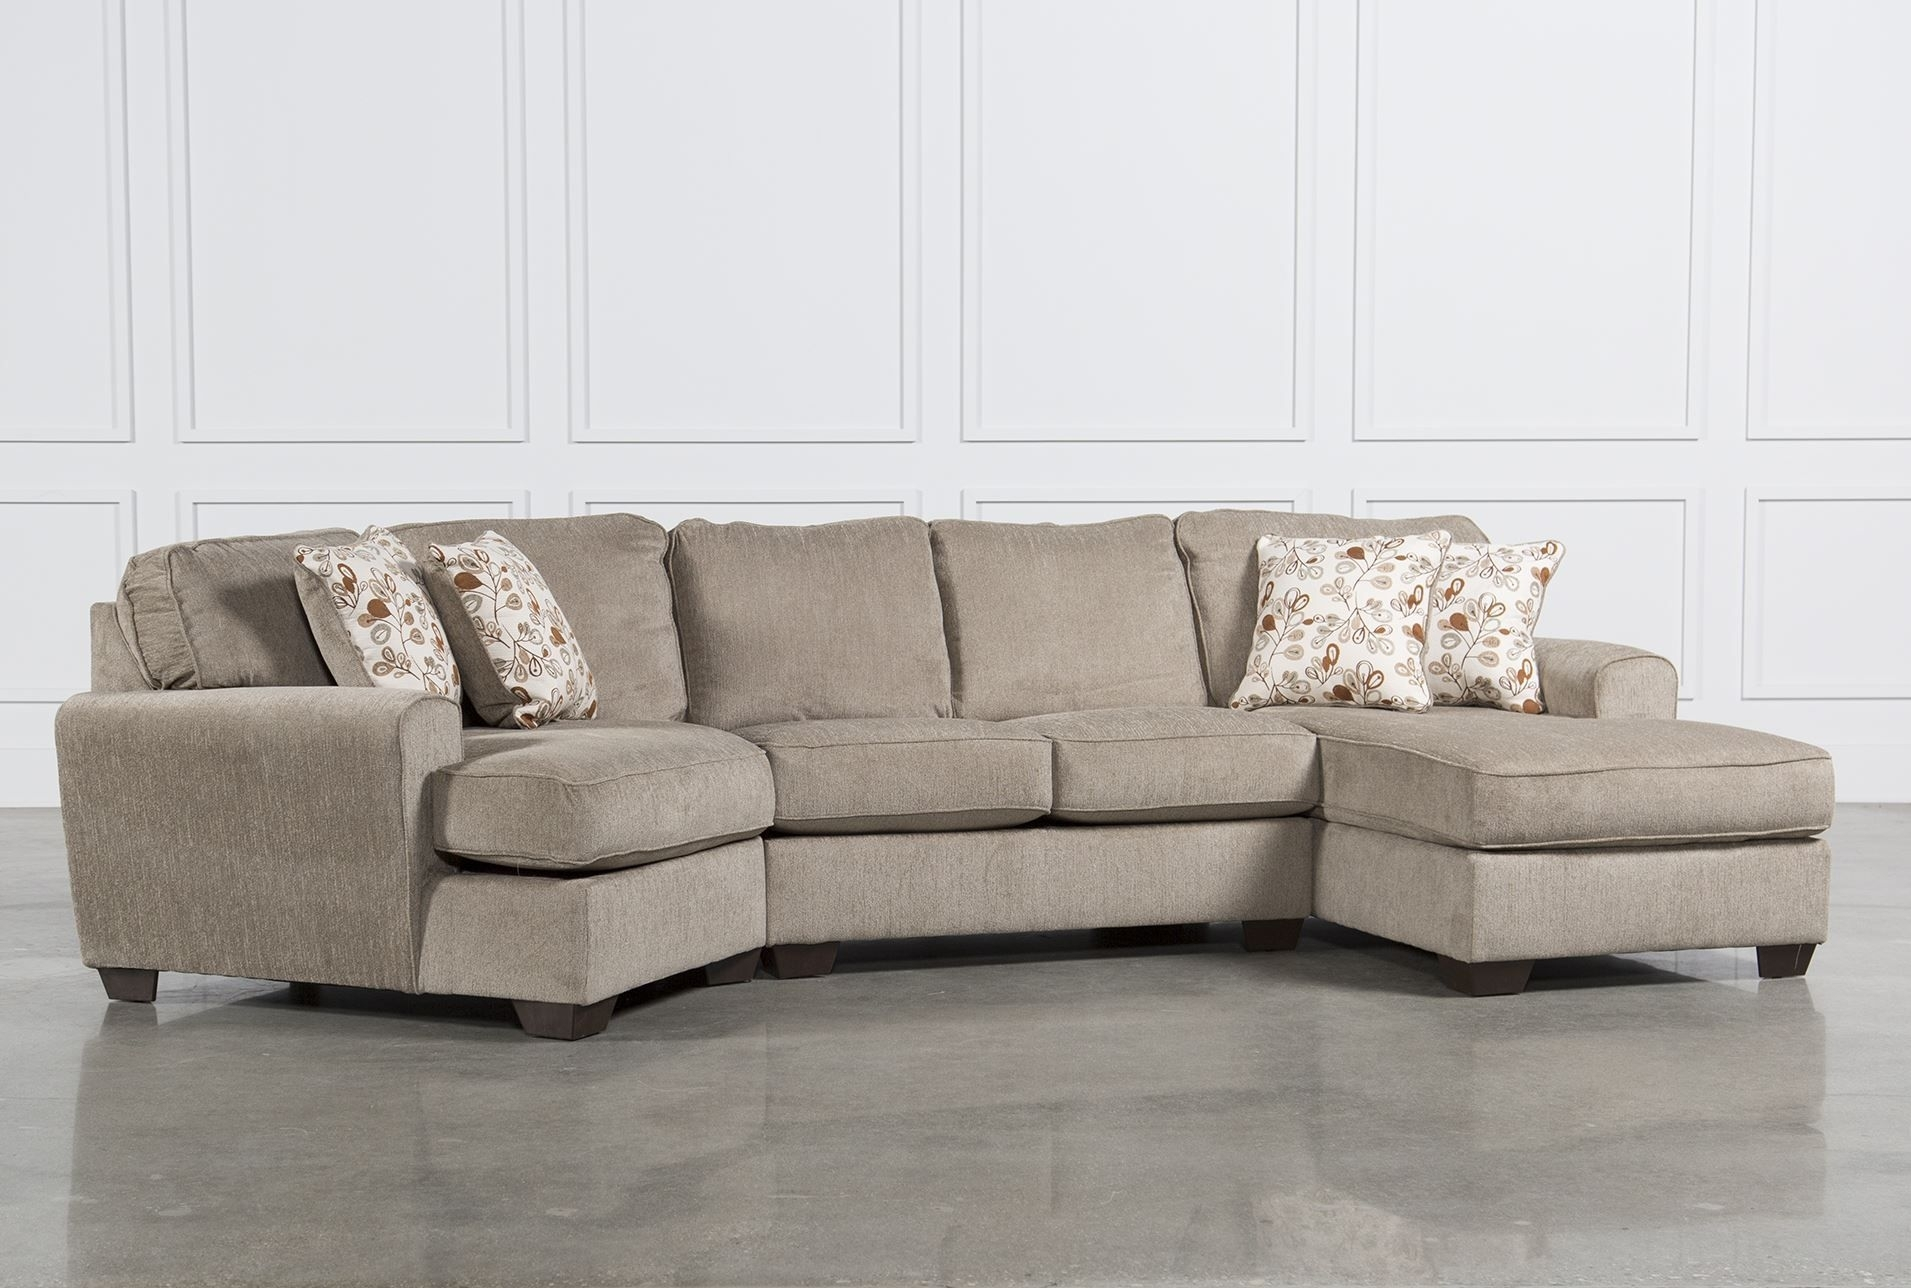 Patola Park 3 Piece Cuddler Sectional W/raf Corner Chaise | Mon Throughout Cuddler Sectional Sofas (Image 9 of 10)